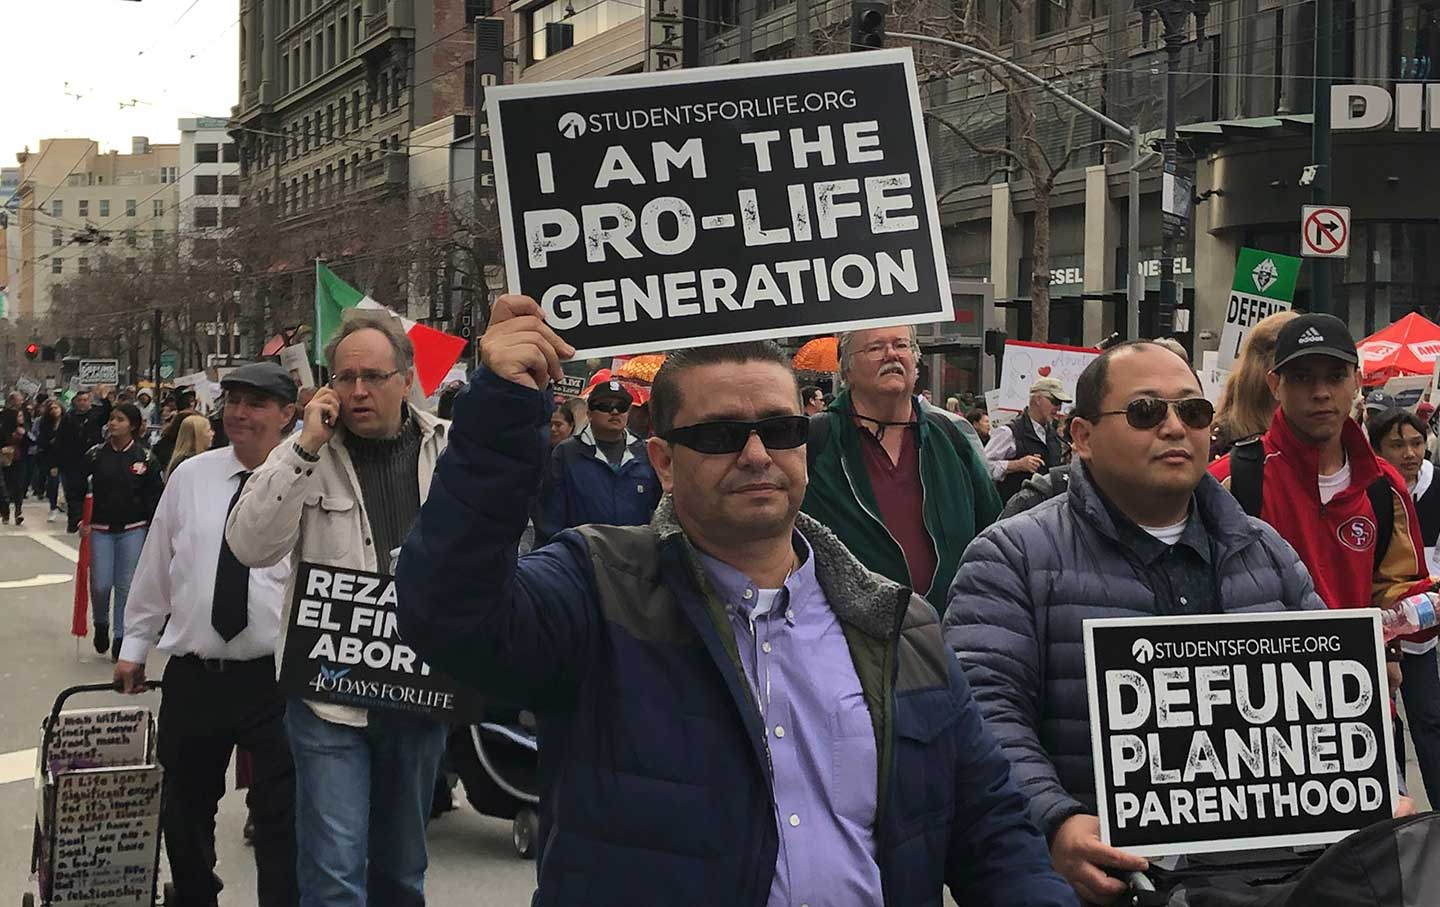 https://www.thenation.com/wp-content/uploads/2019/05/pro-life-men-ap-img.jpg?scale=896&compress=80